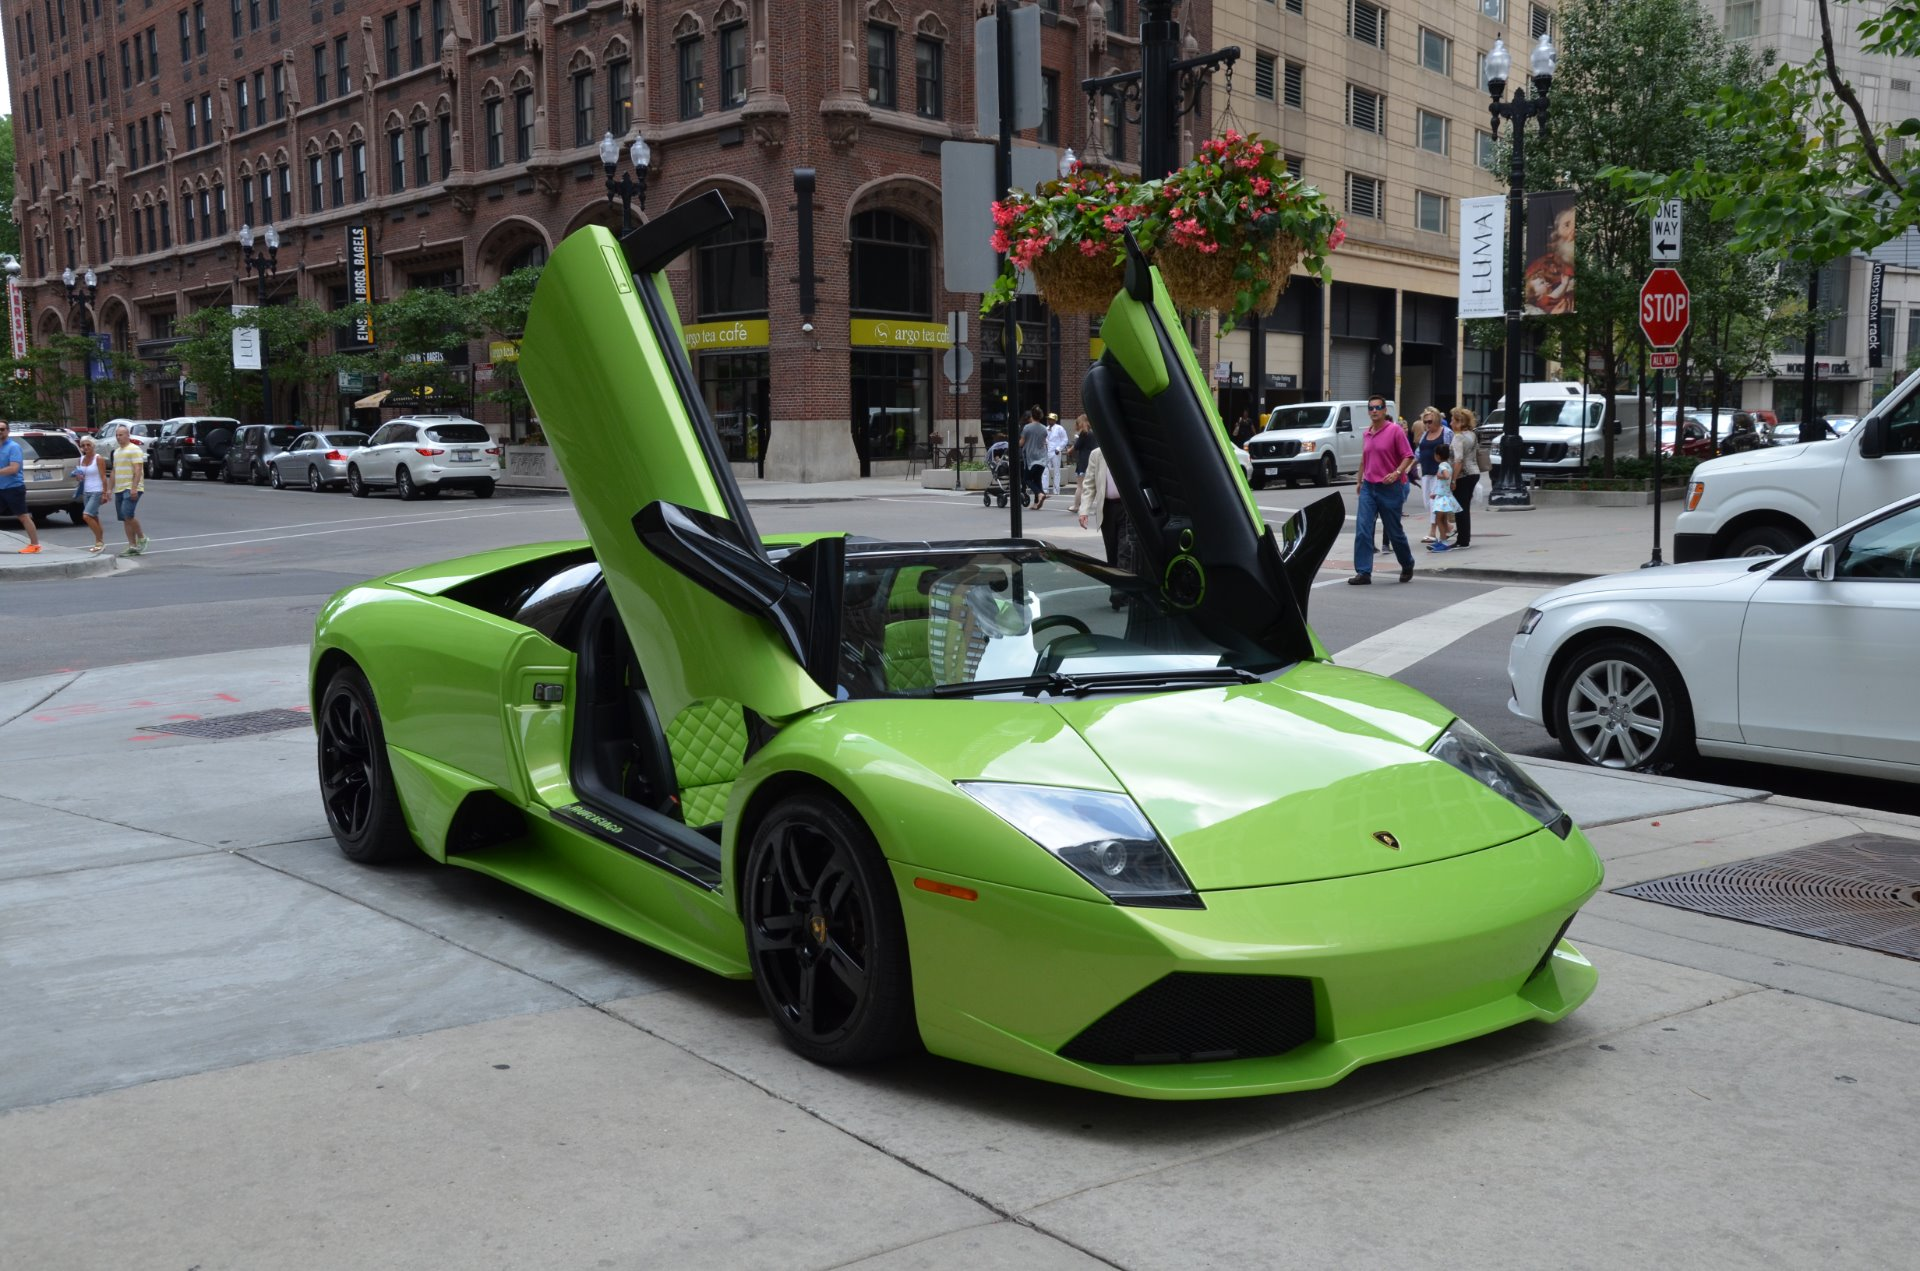 2009 lamborghini murcielago roadster lp640 stock r276aa. Black Bedroom Furniture Sets. Home Design Ideas